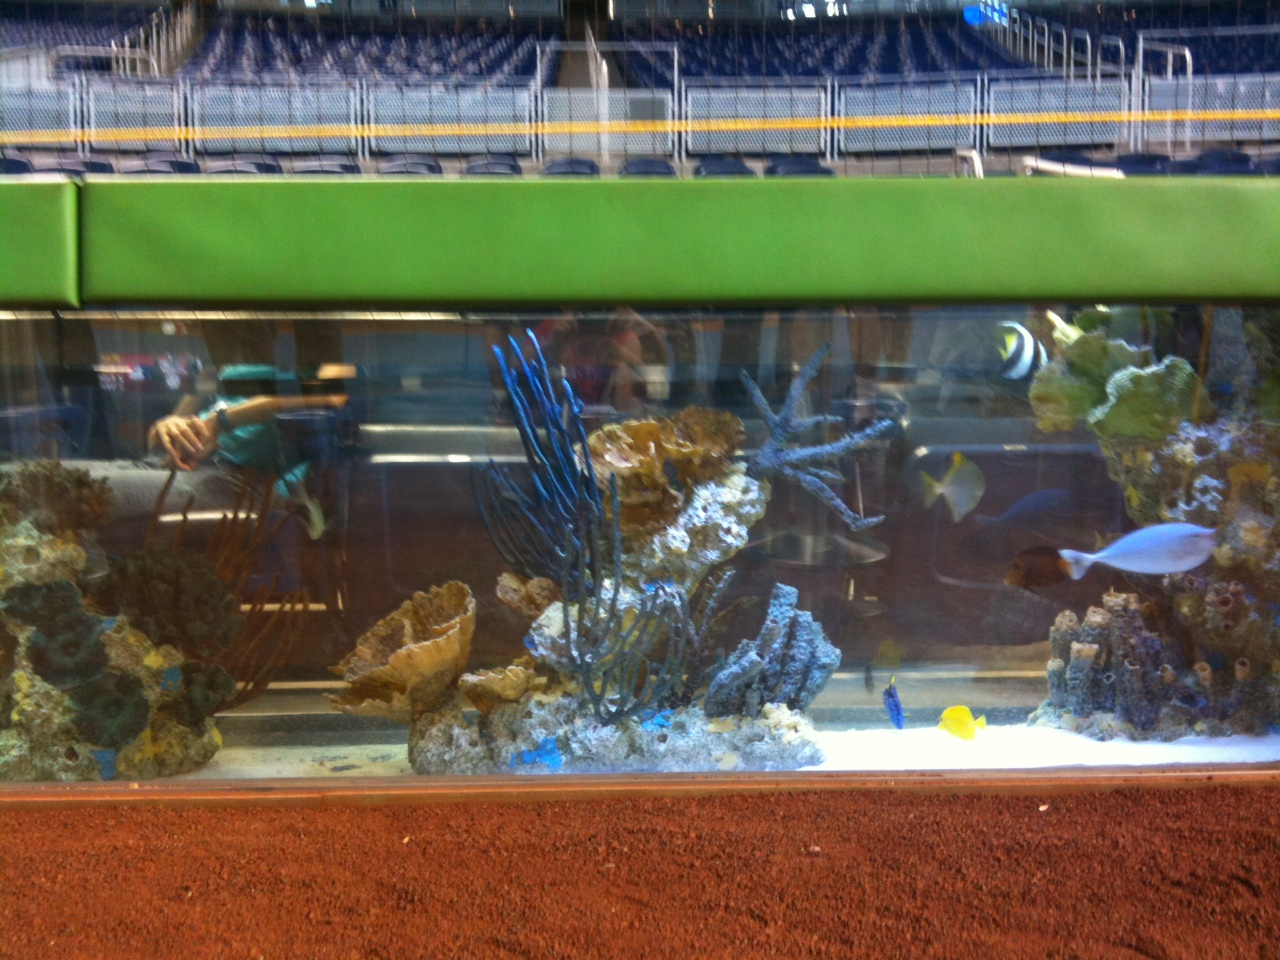 My amazing experience at marlins park matt 39 s bats for Marlins fish tank